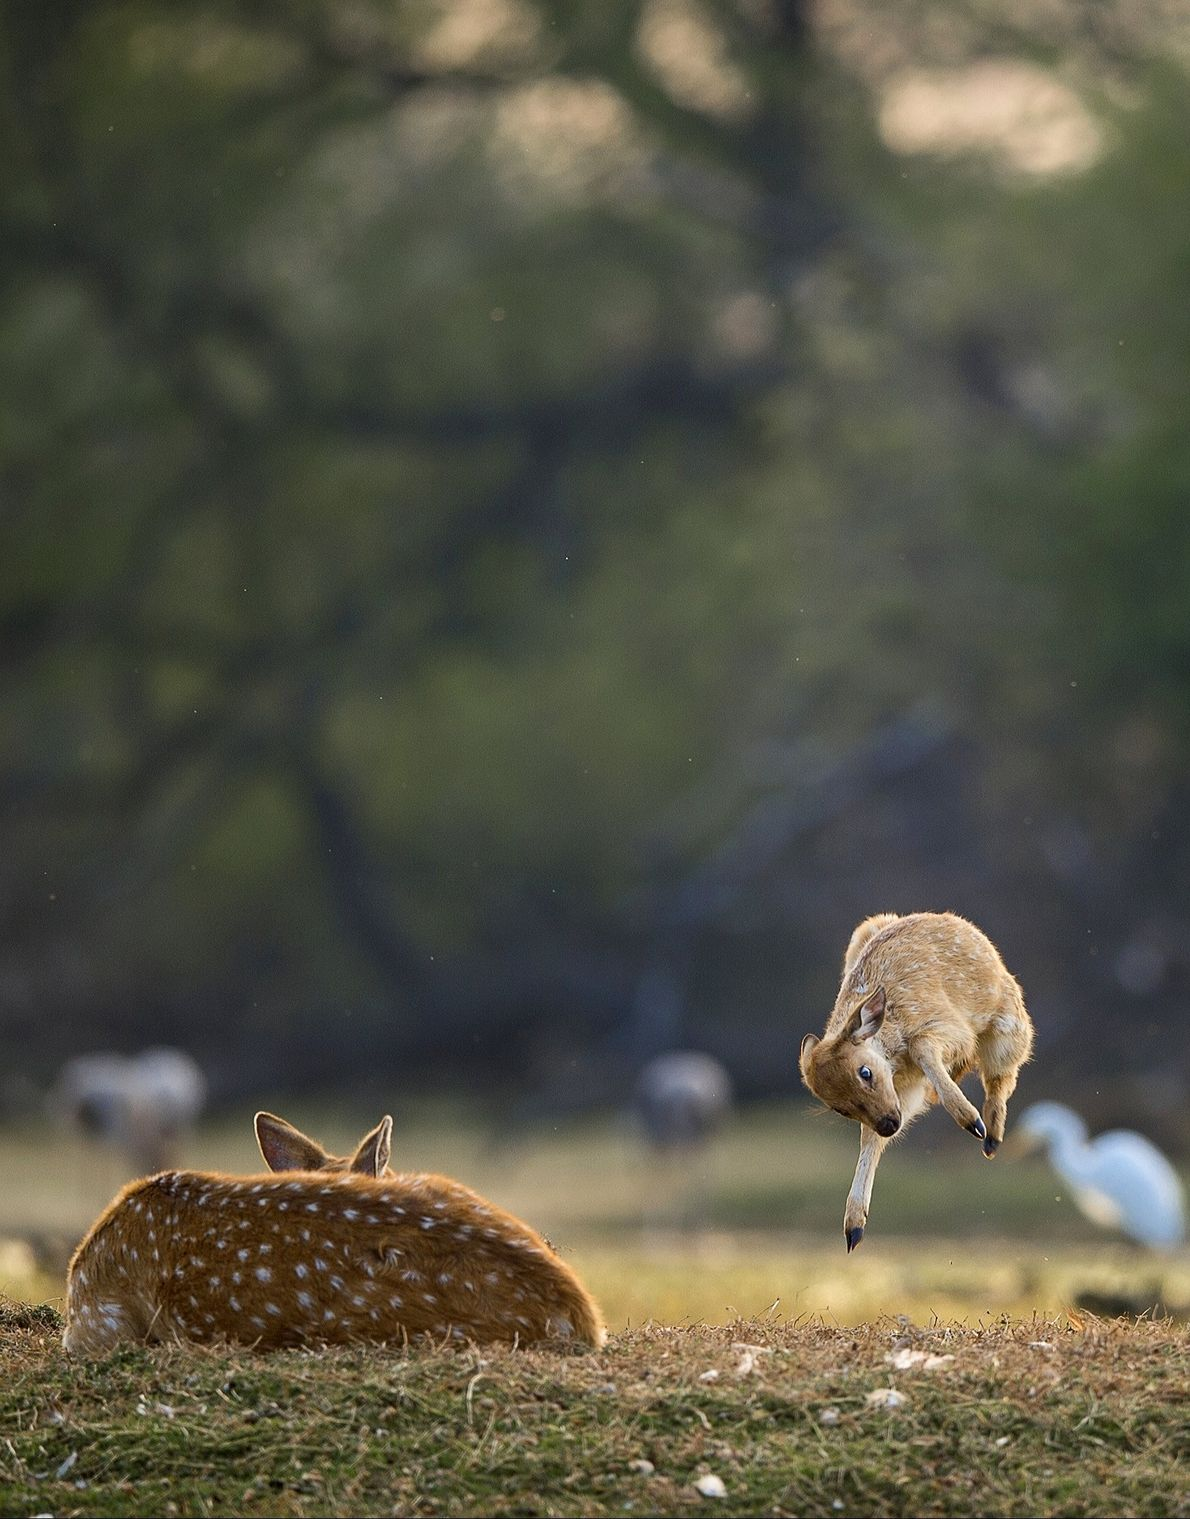 Your Shot photographer Nitin Dua documented this moment of a fawn wanting to play with its ...